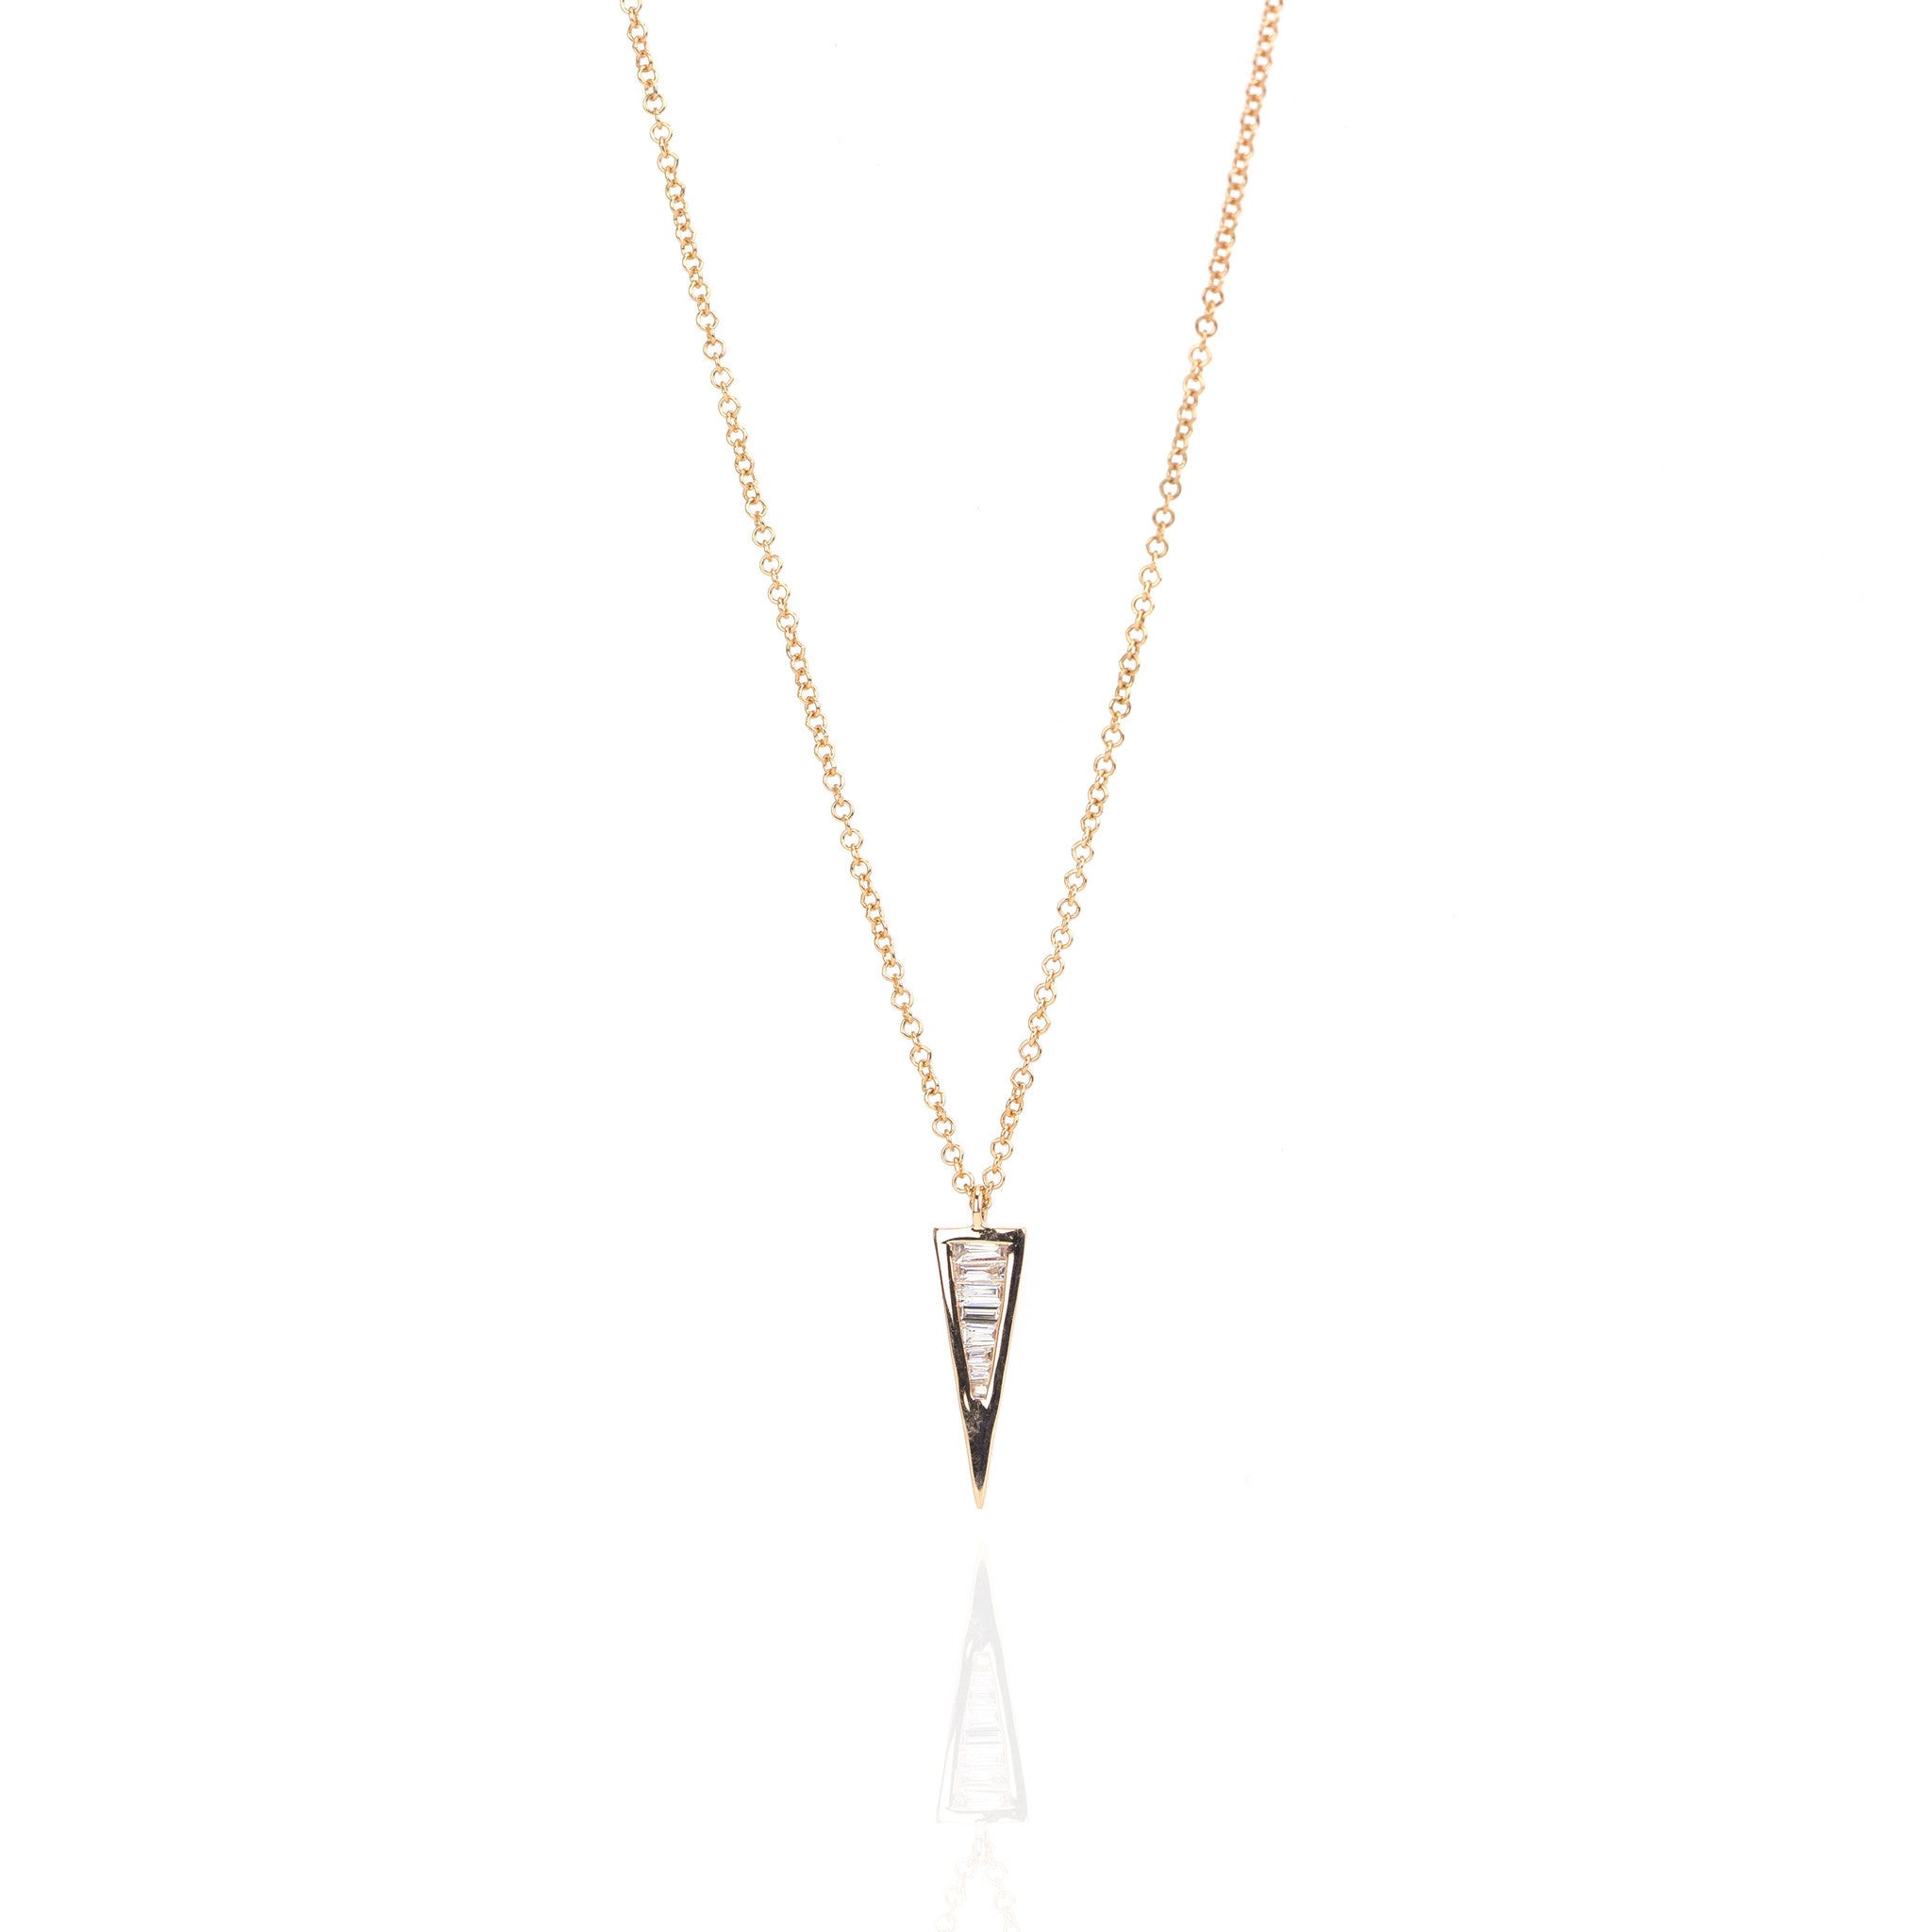 Baguette Diamond Triangle Necklace by Atheria Jewelry